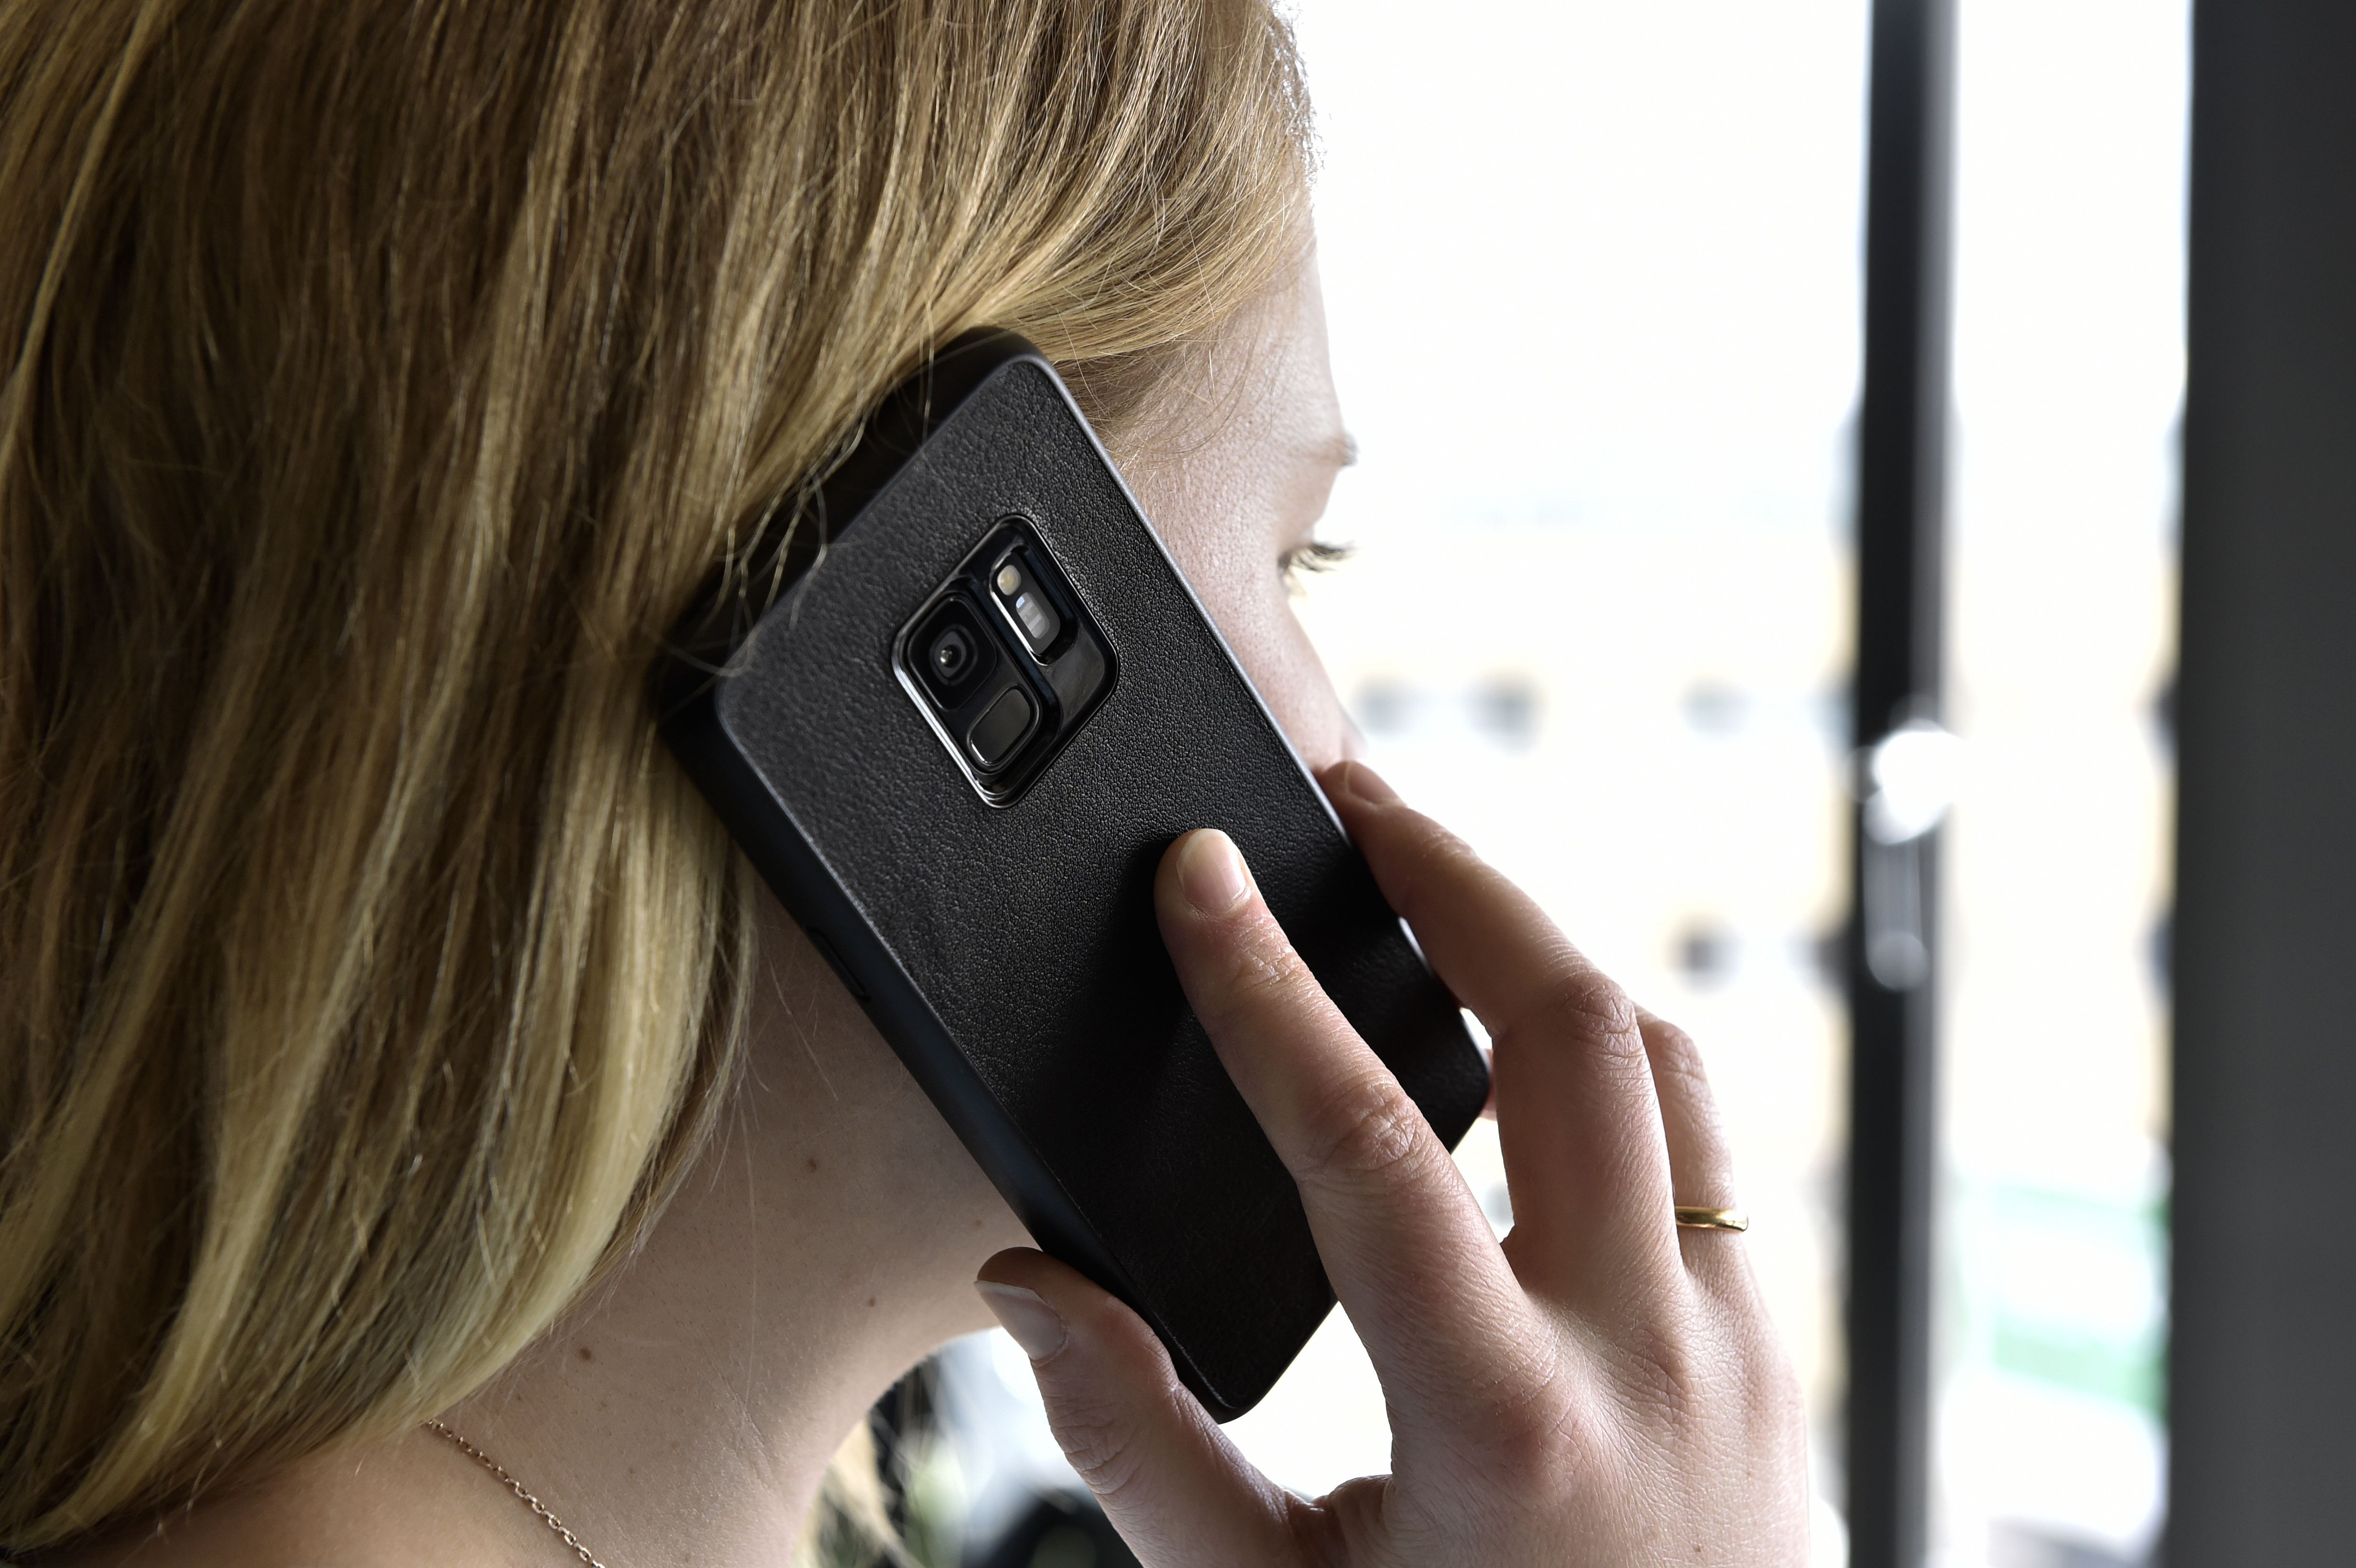 Mous - Protective Case for iPhone X/XS - Limitless 2.0 - Black Leather - Screen Protector Included